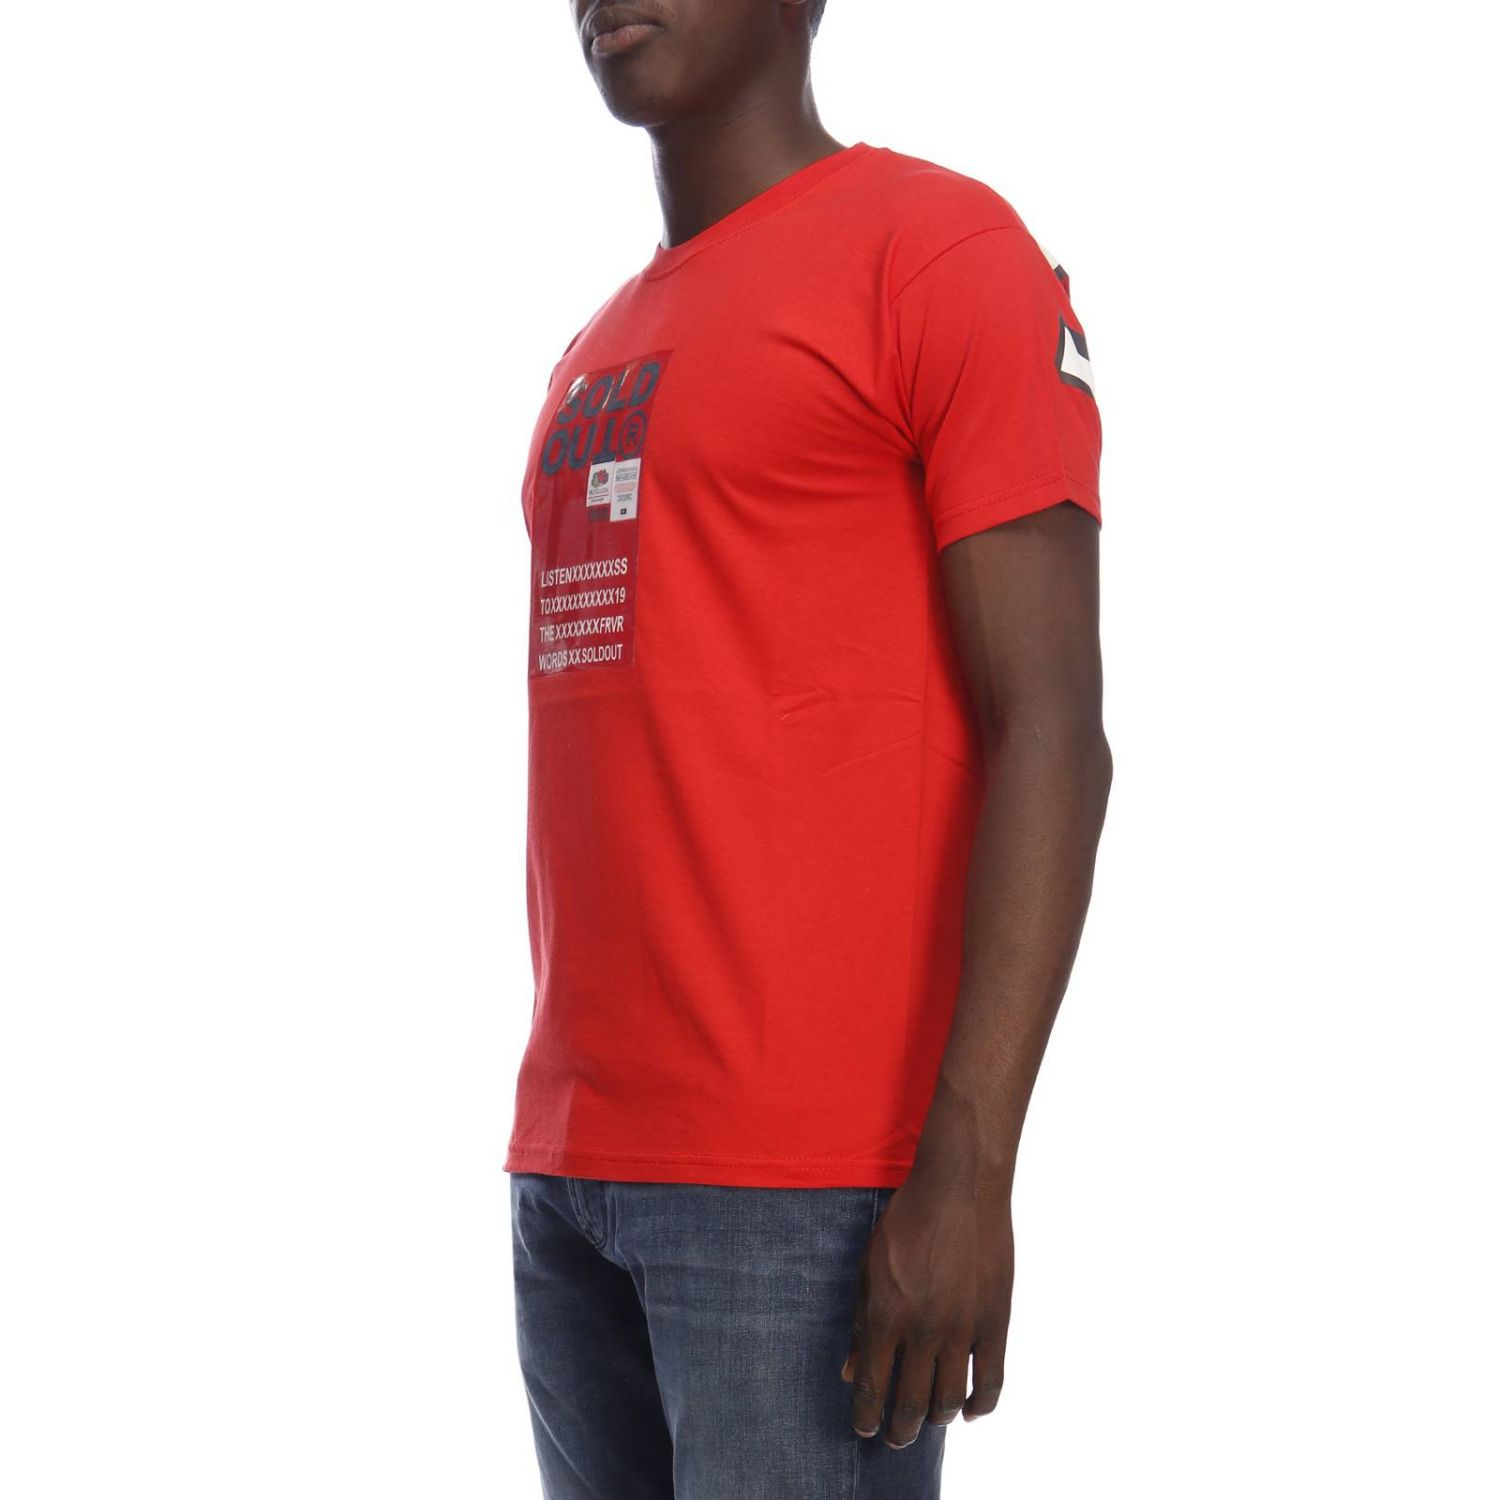 T-shirt men Sold Out red 2